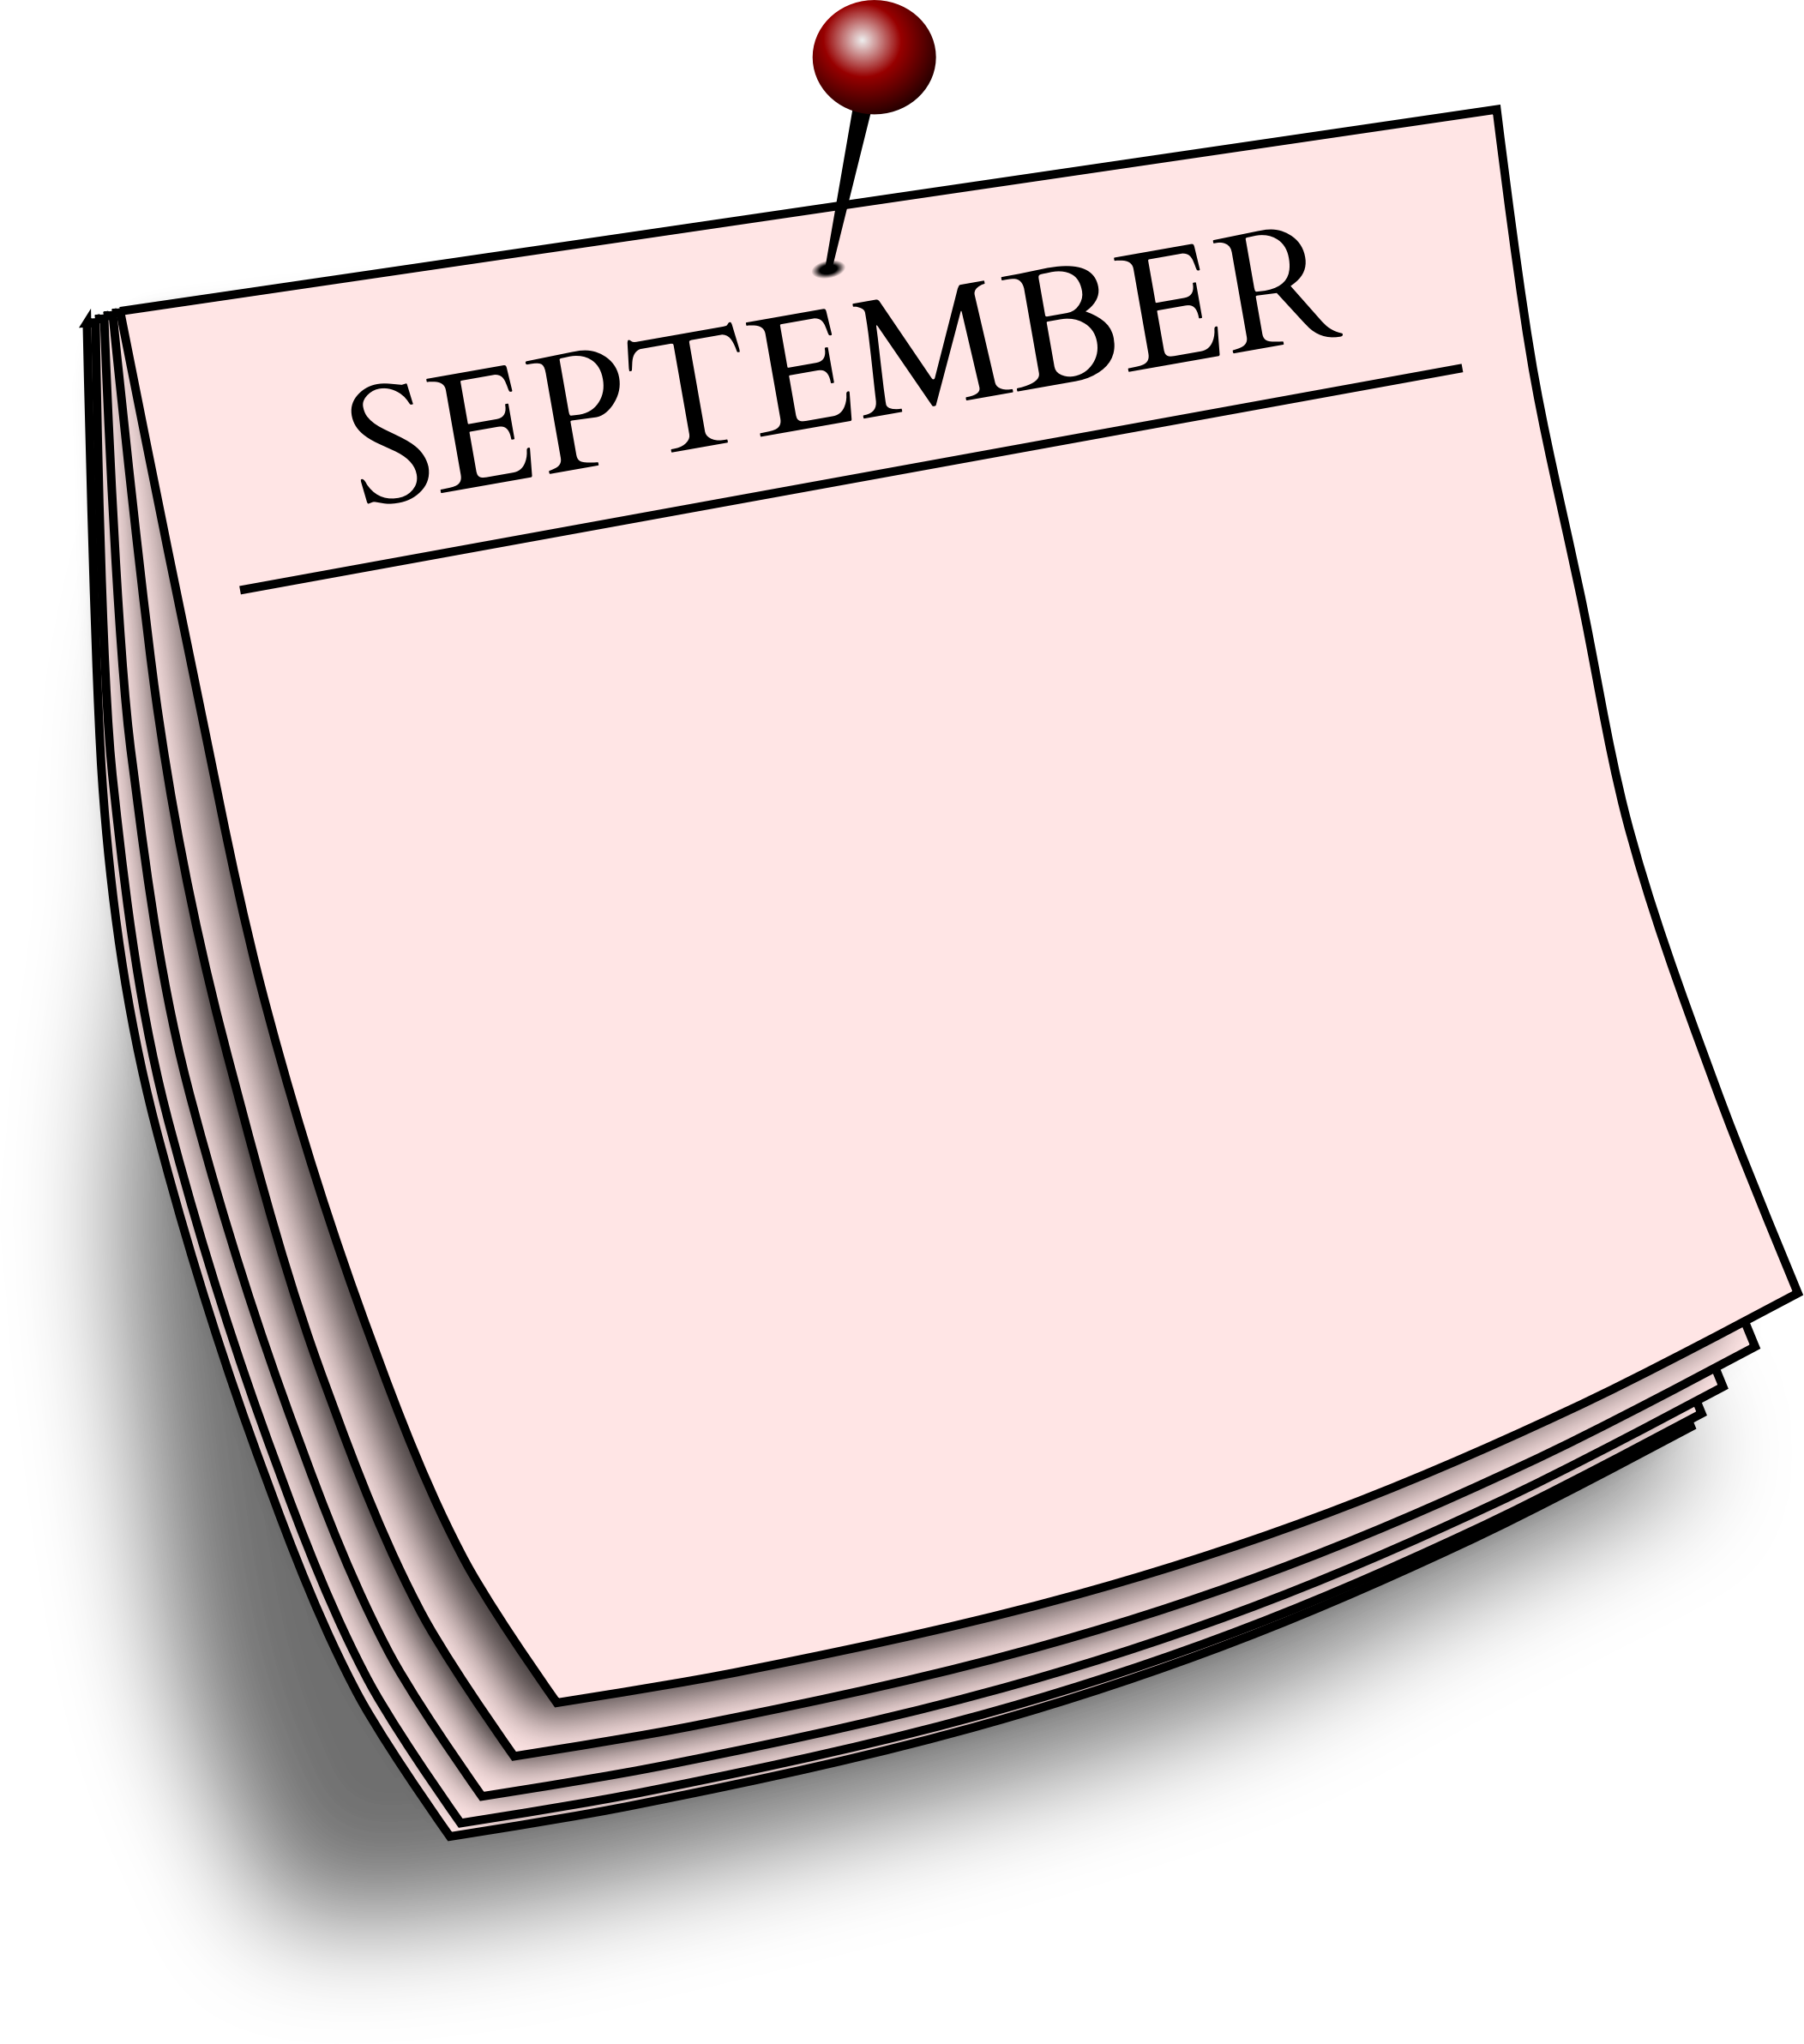 Monthly note - September by Firkin